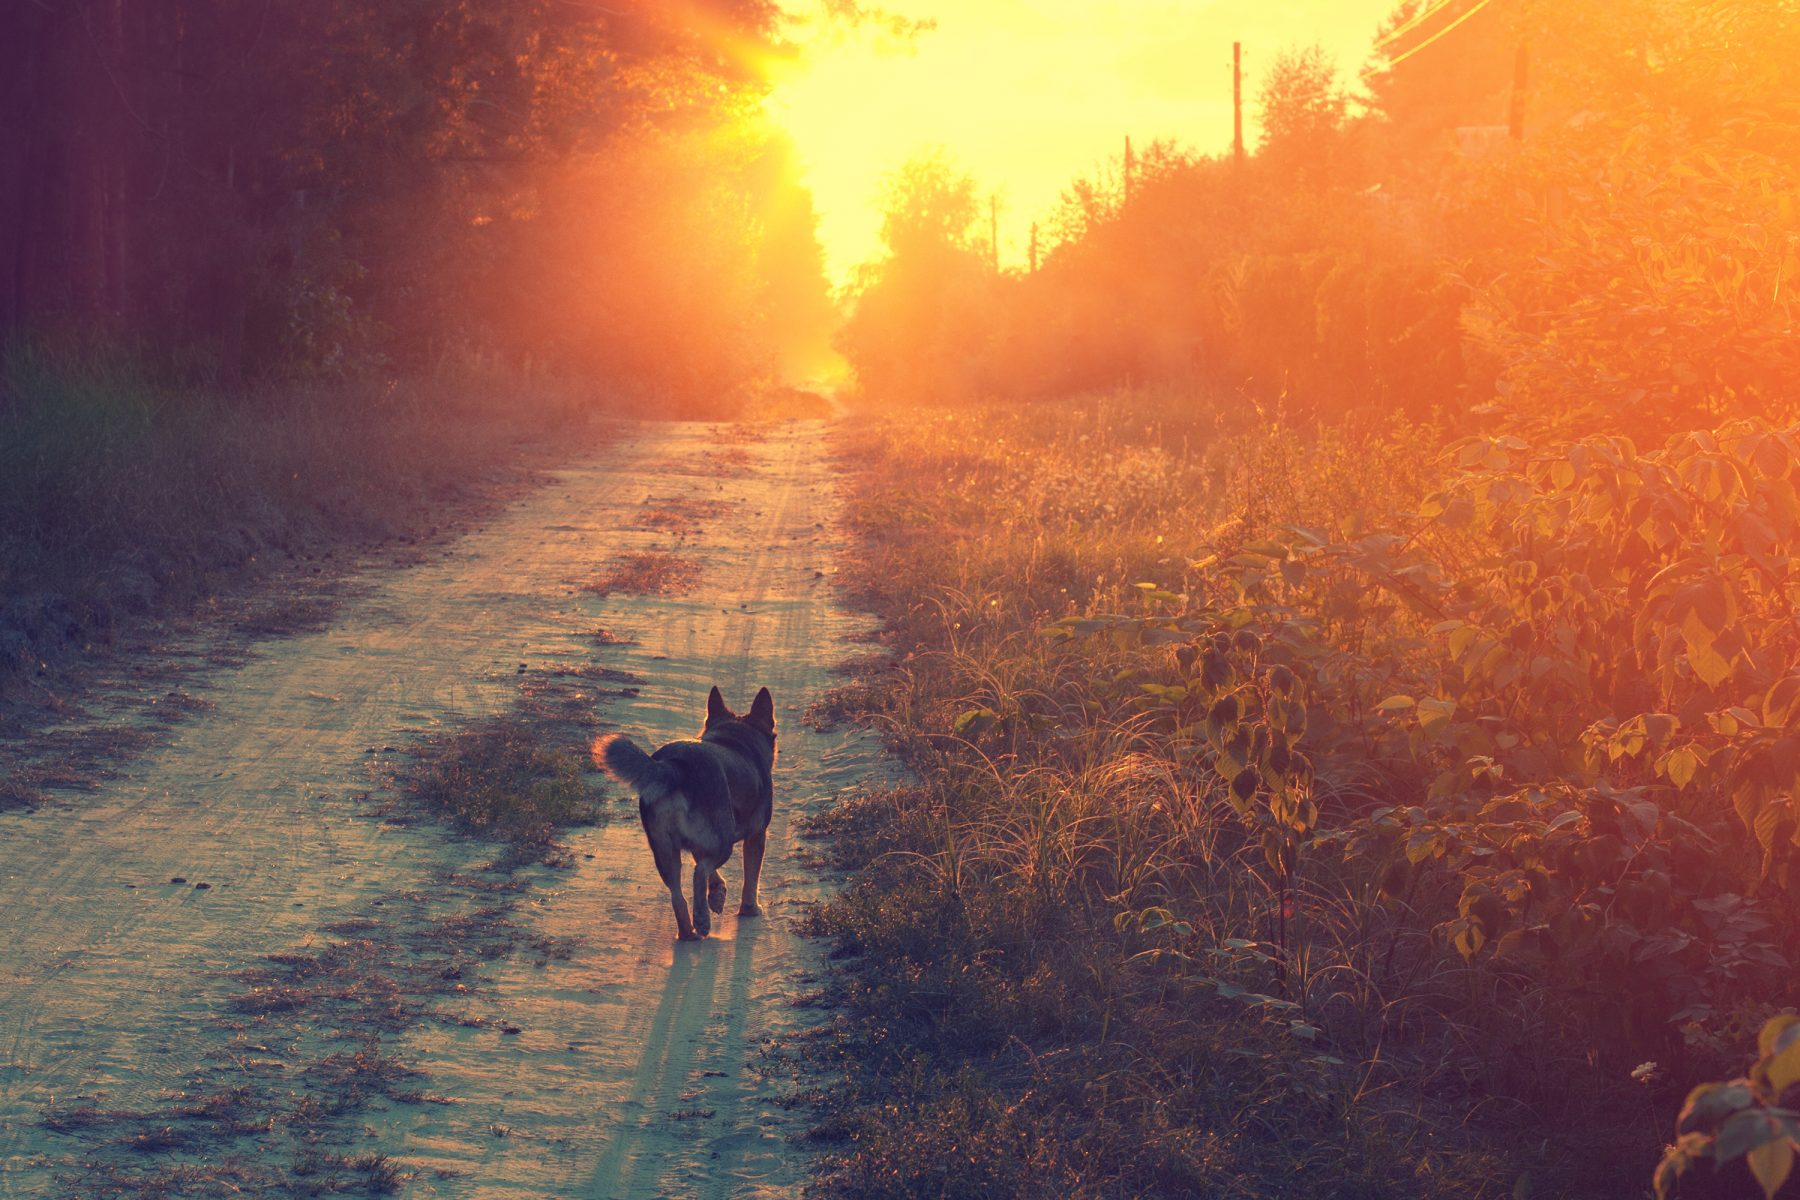 Dog walking off to start the day. No worries, no doubts. We should all be more like dogs. :)